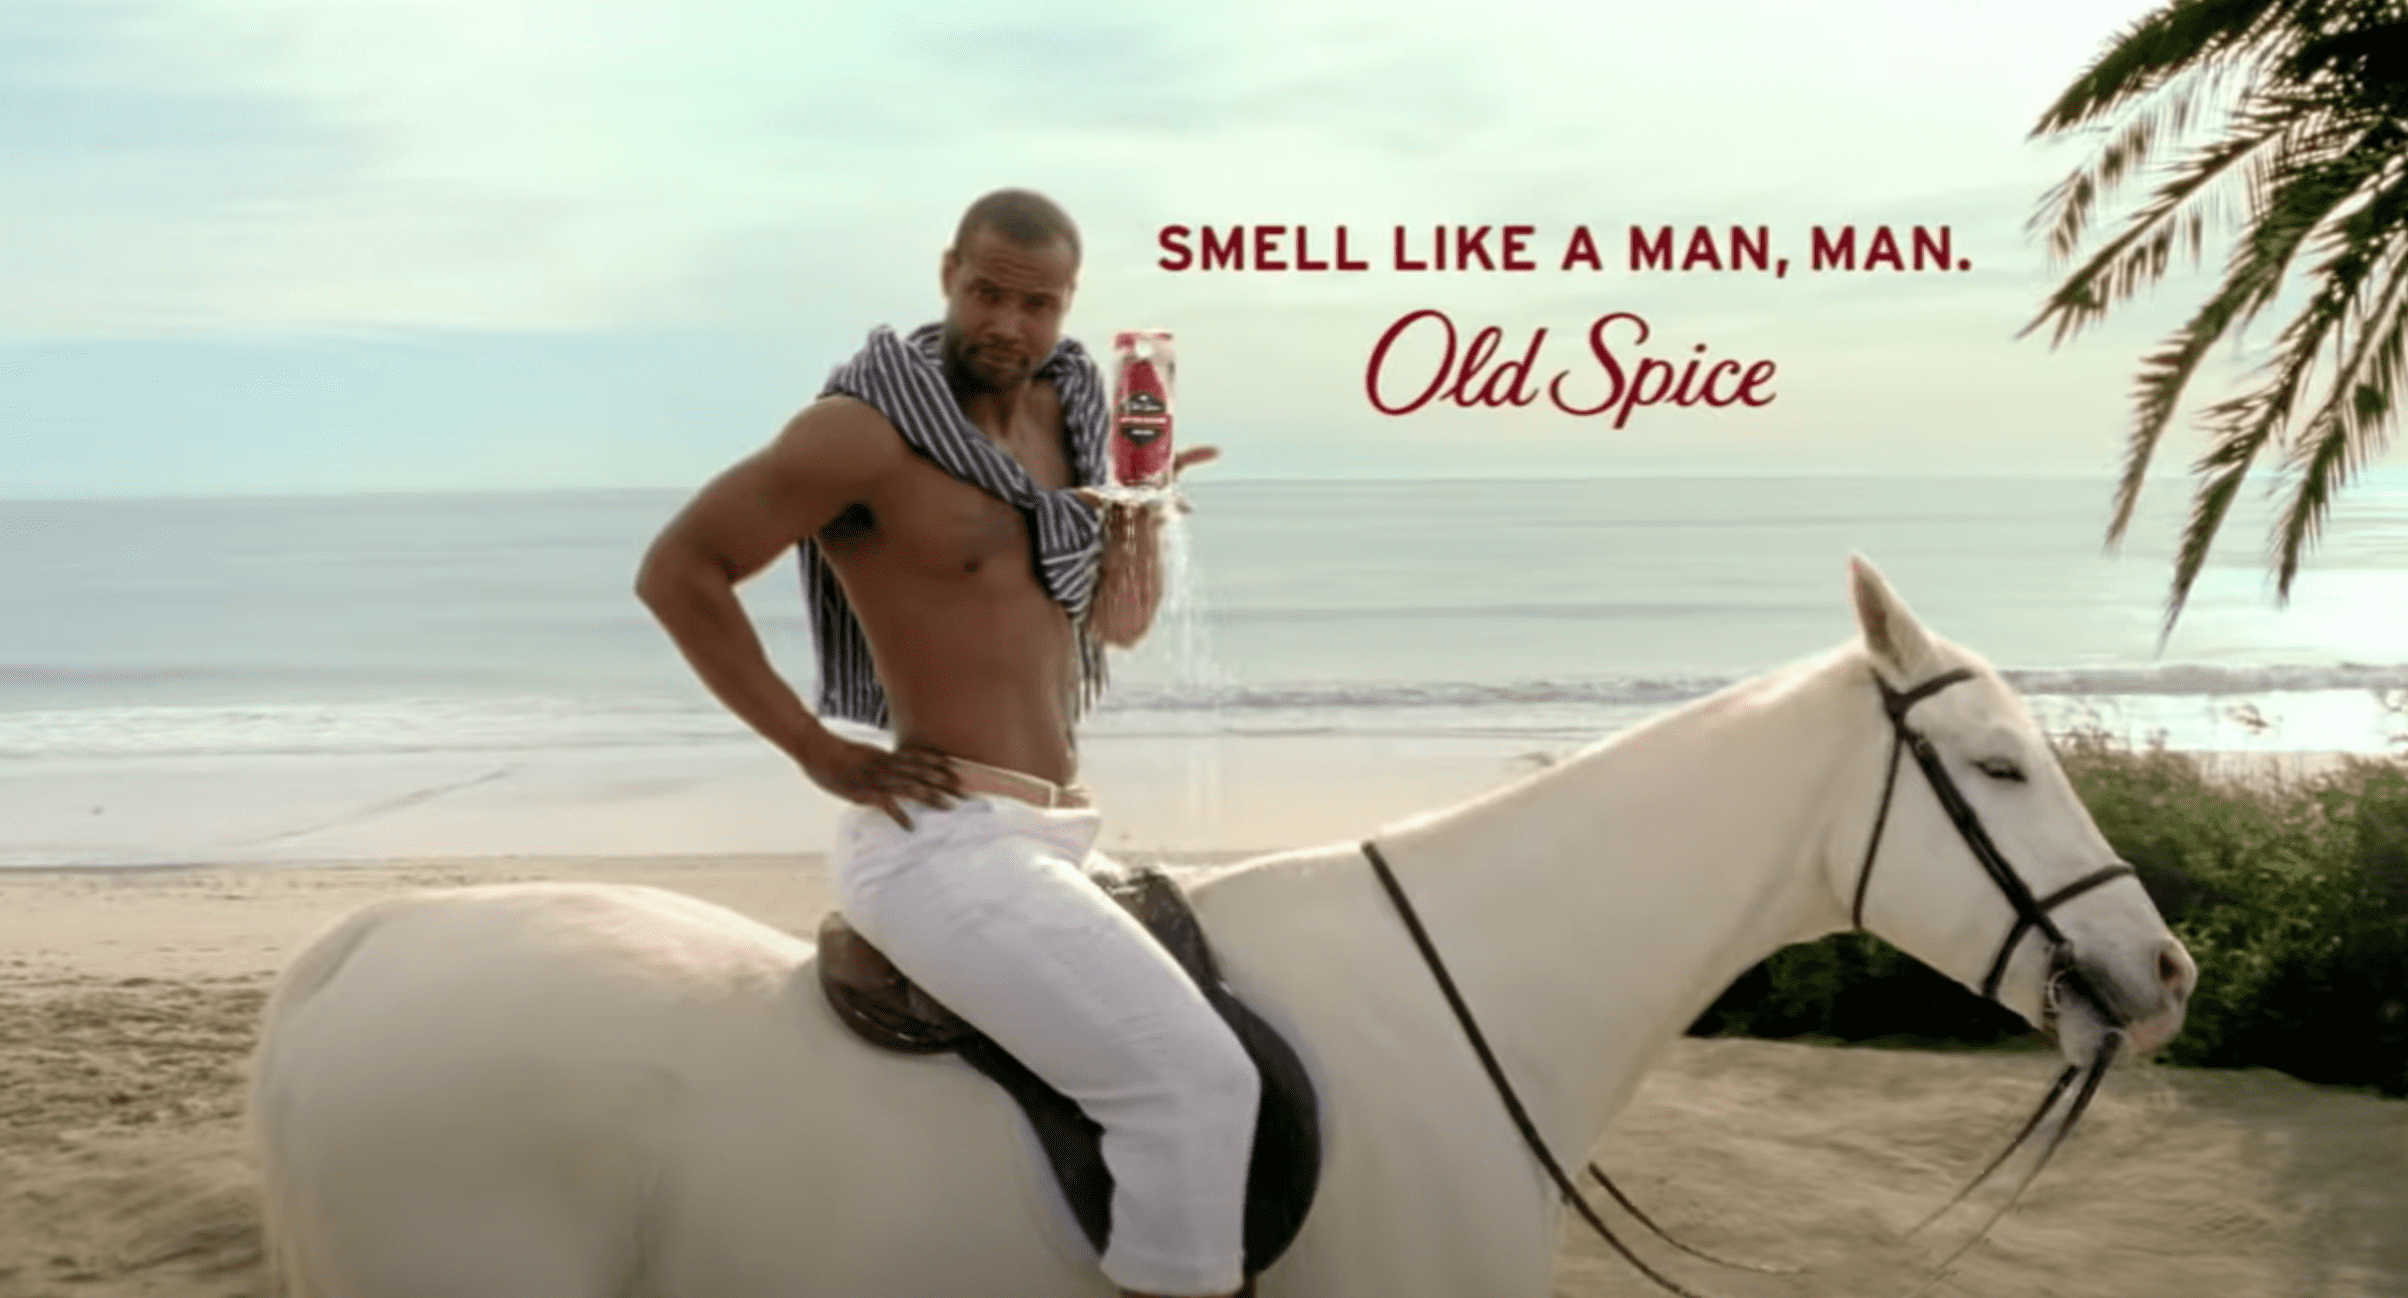 Image Credits:  Old Spice / YouTube